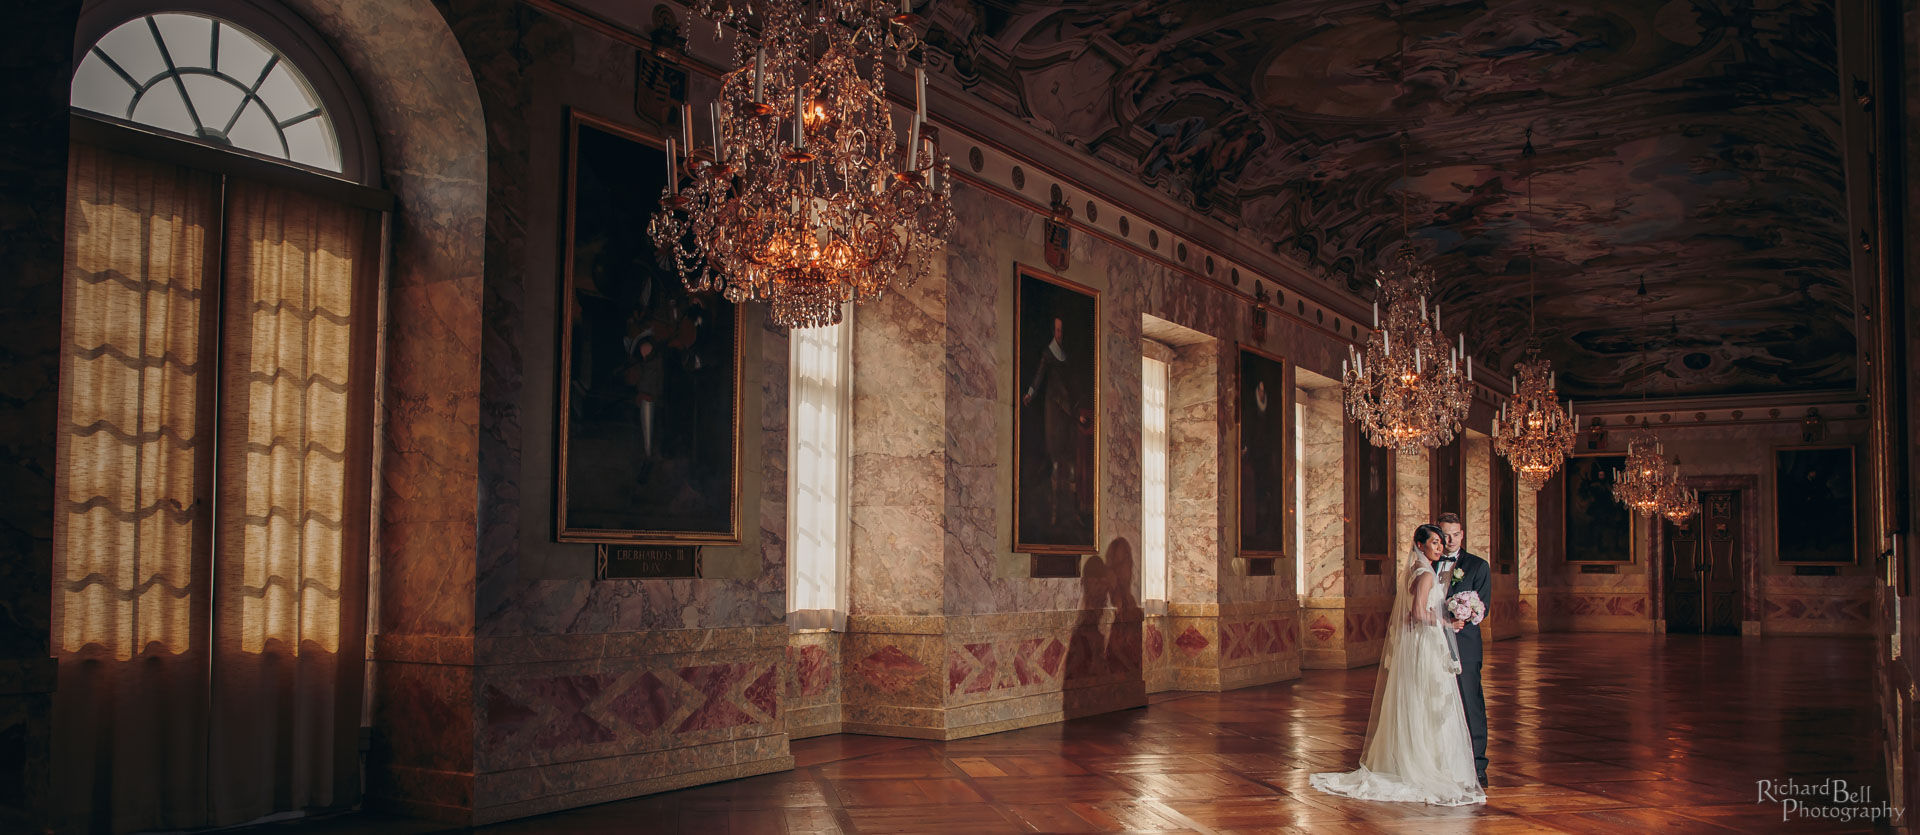 Bride and Groom at Ludwigsburg Palace